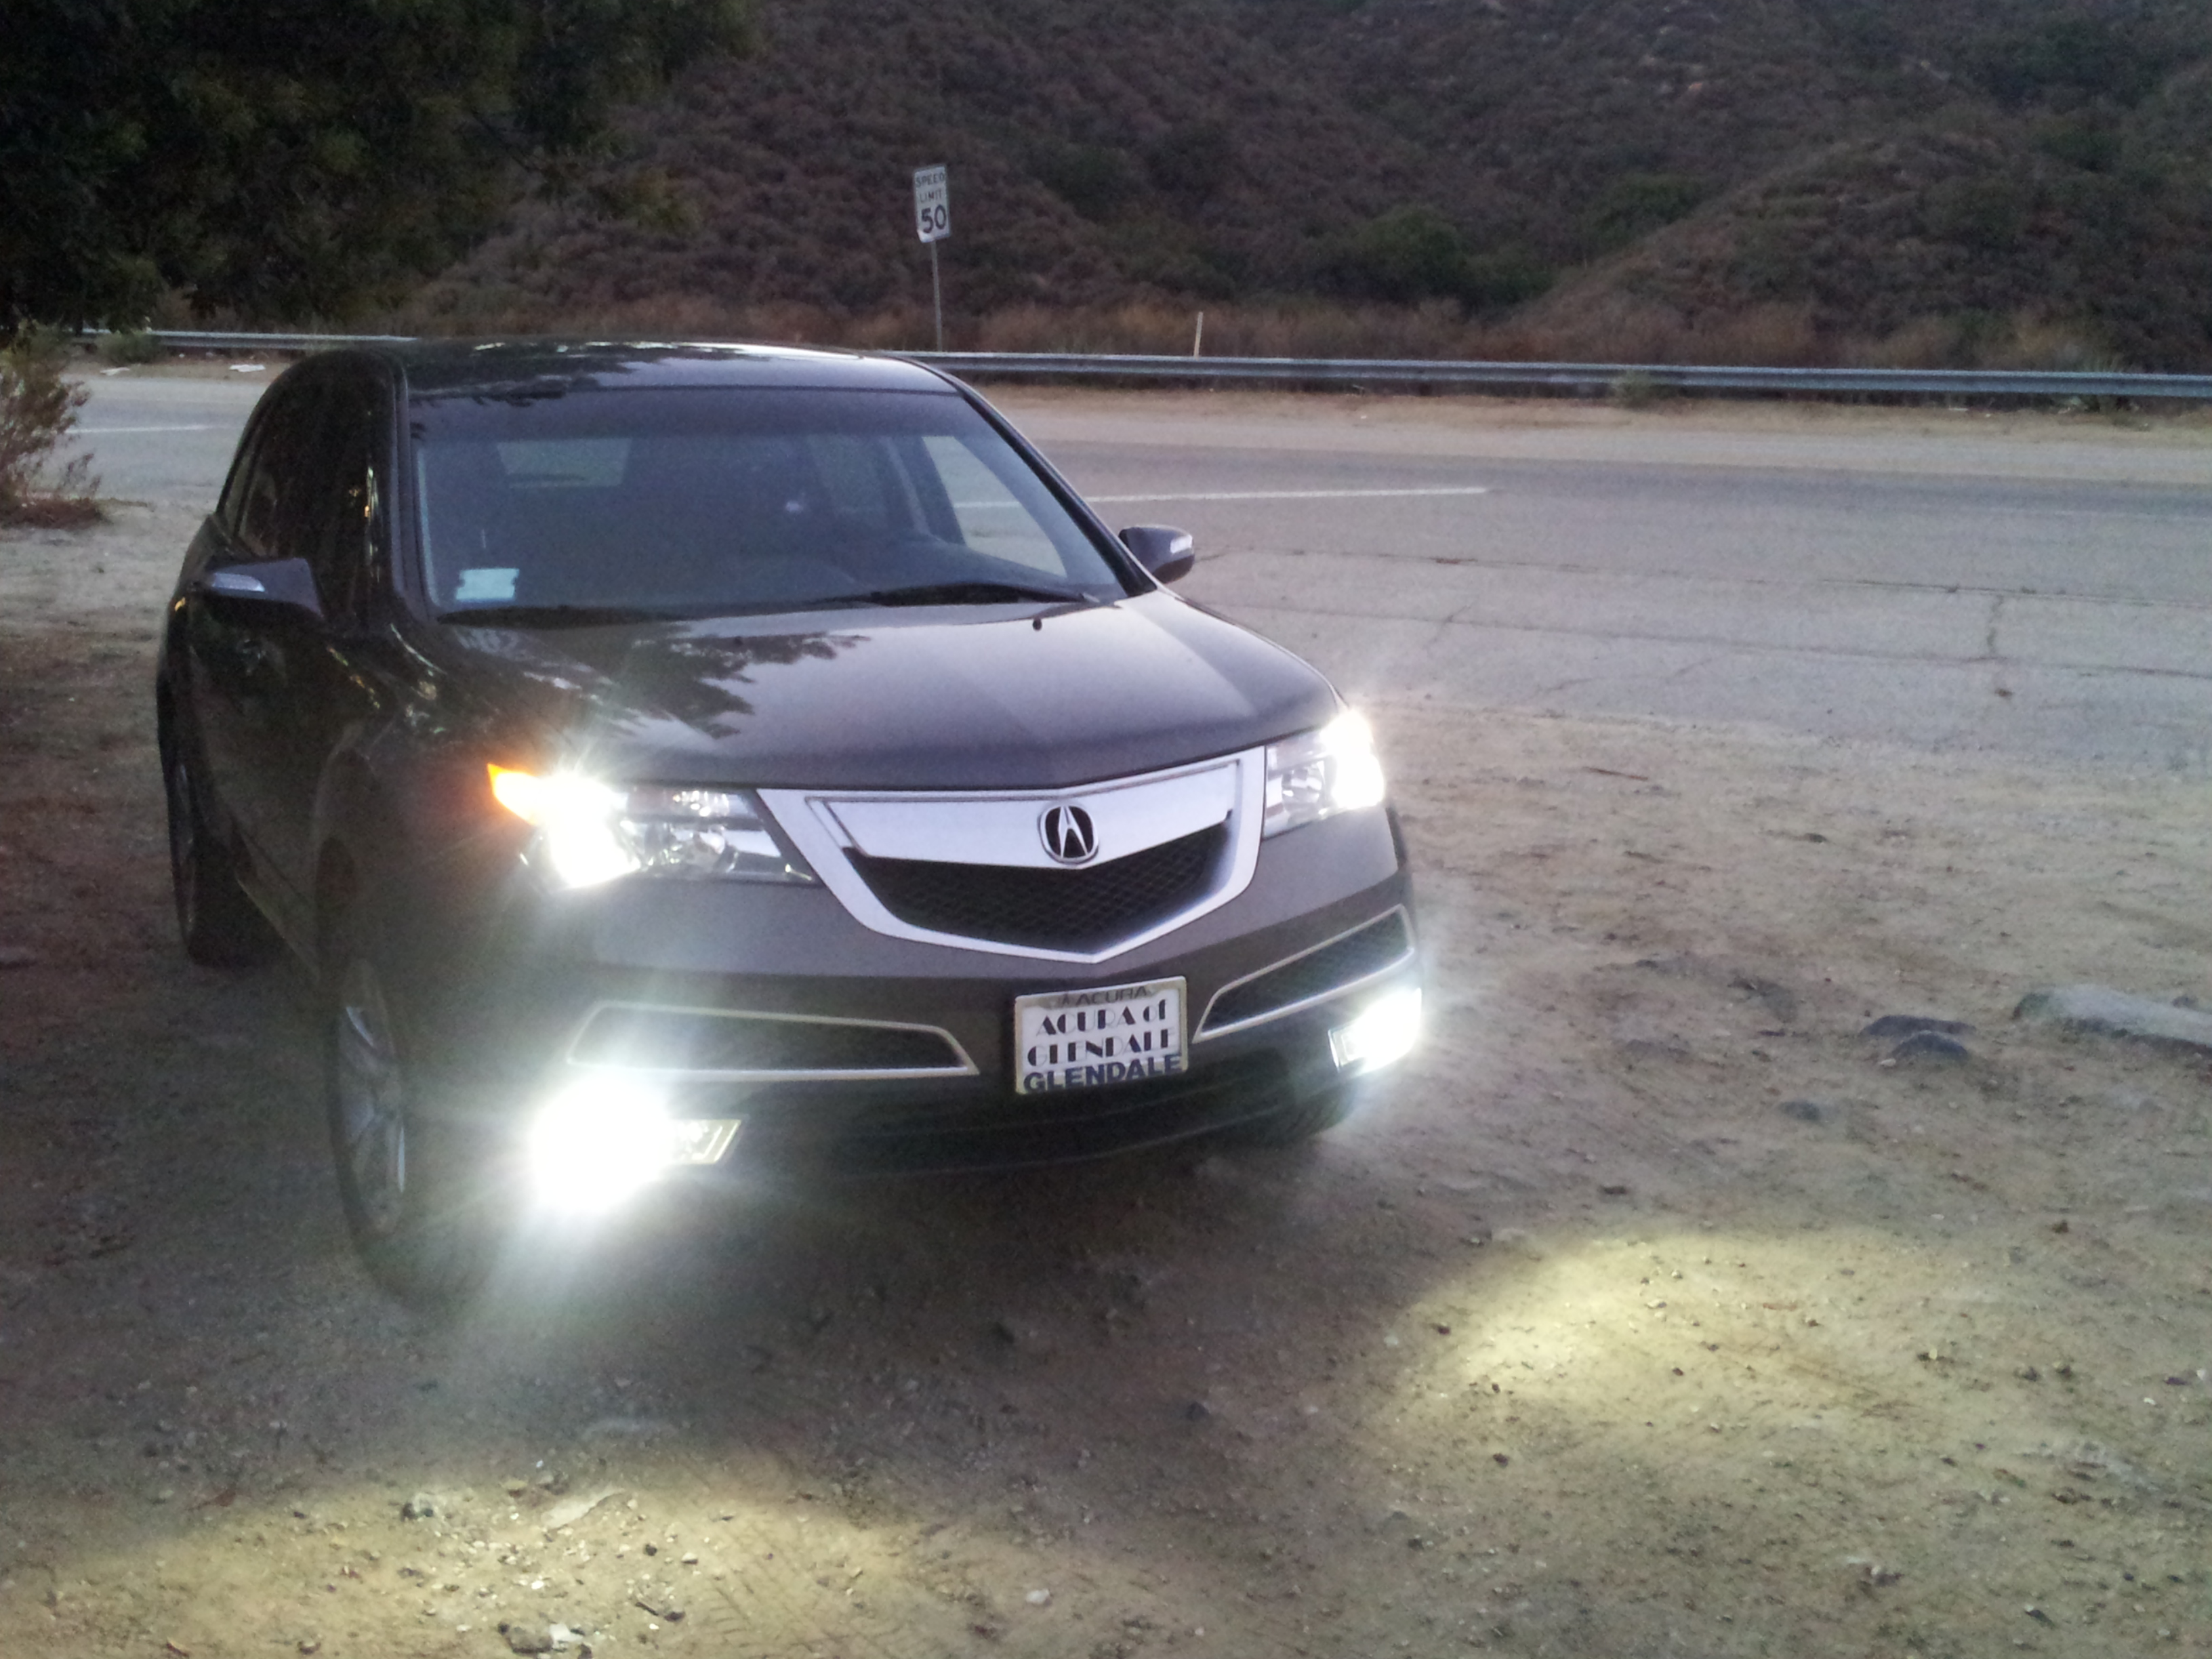 HID Fog/LED DRL Installed - PICS-20121025_181822.jpg